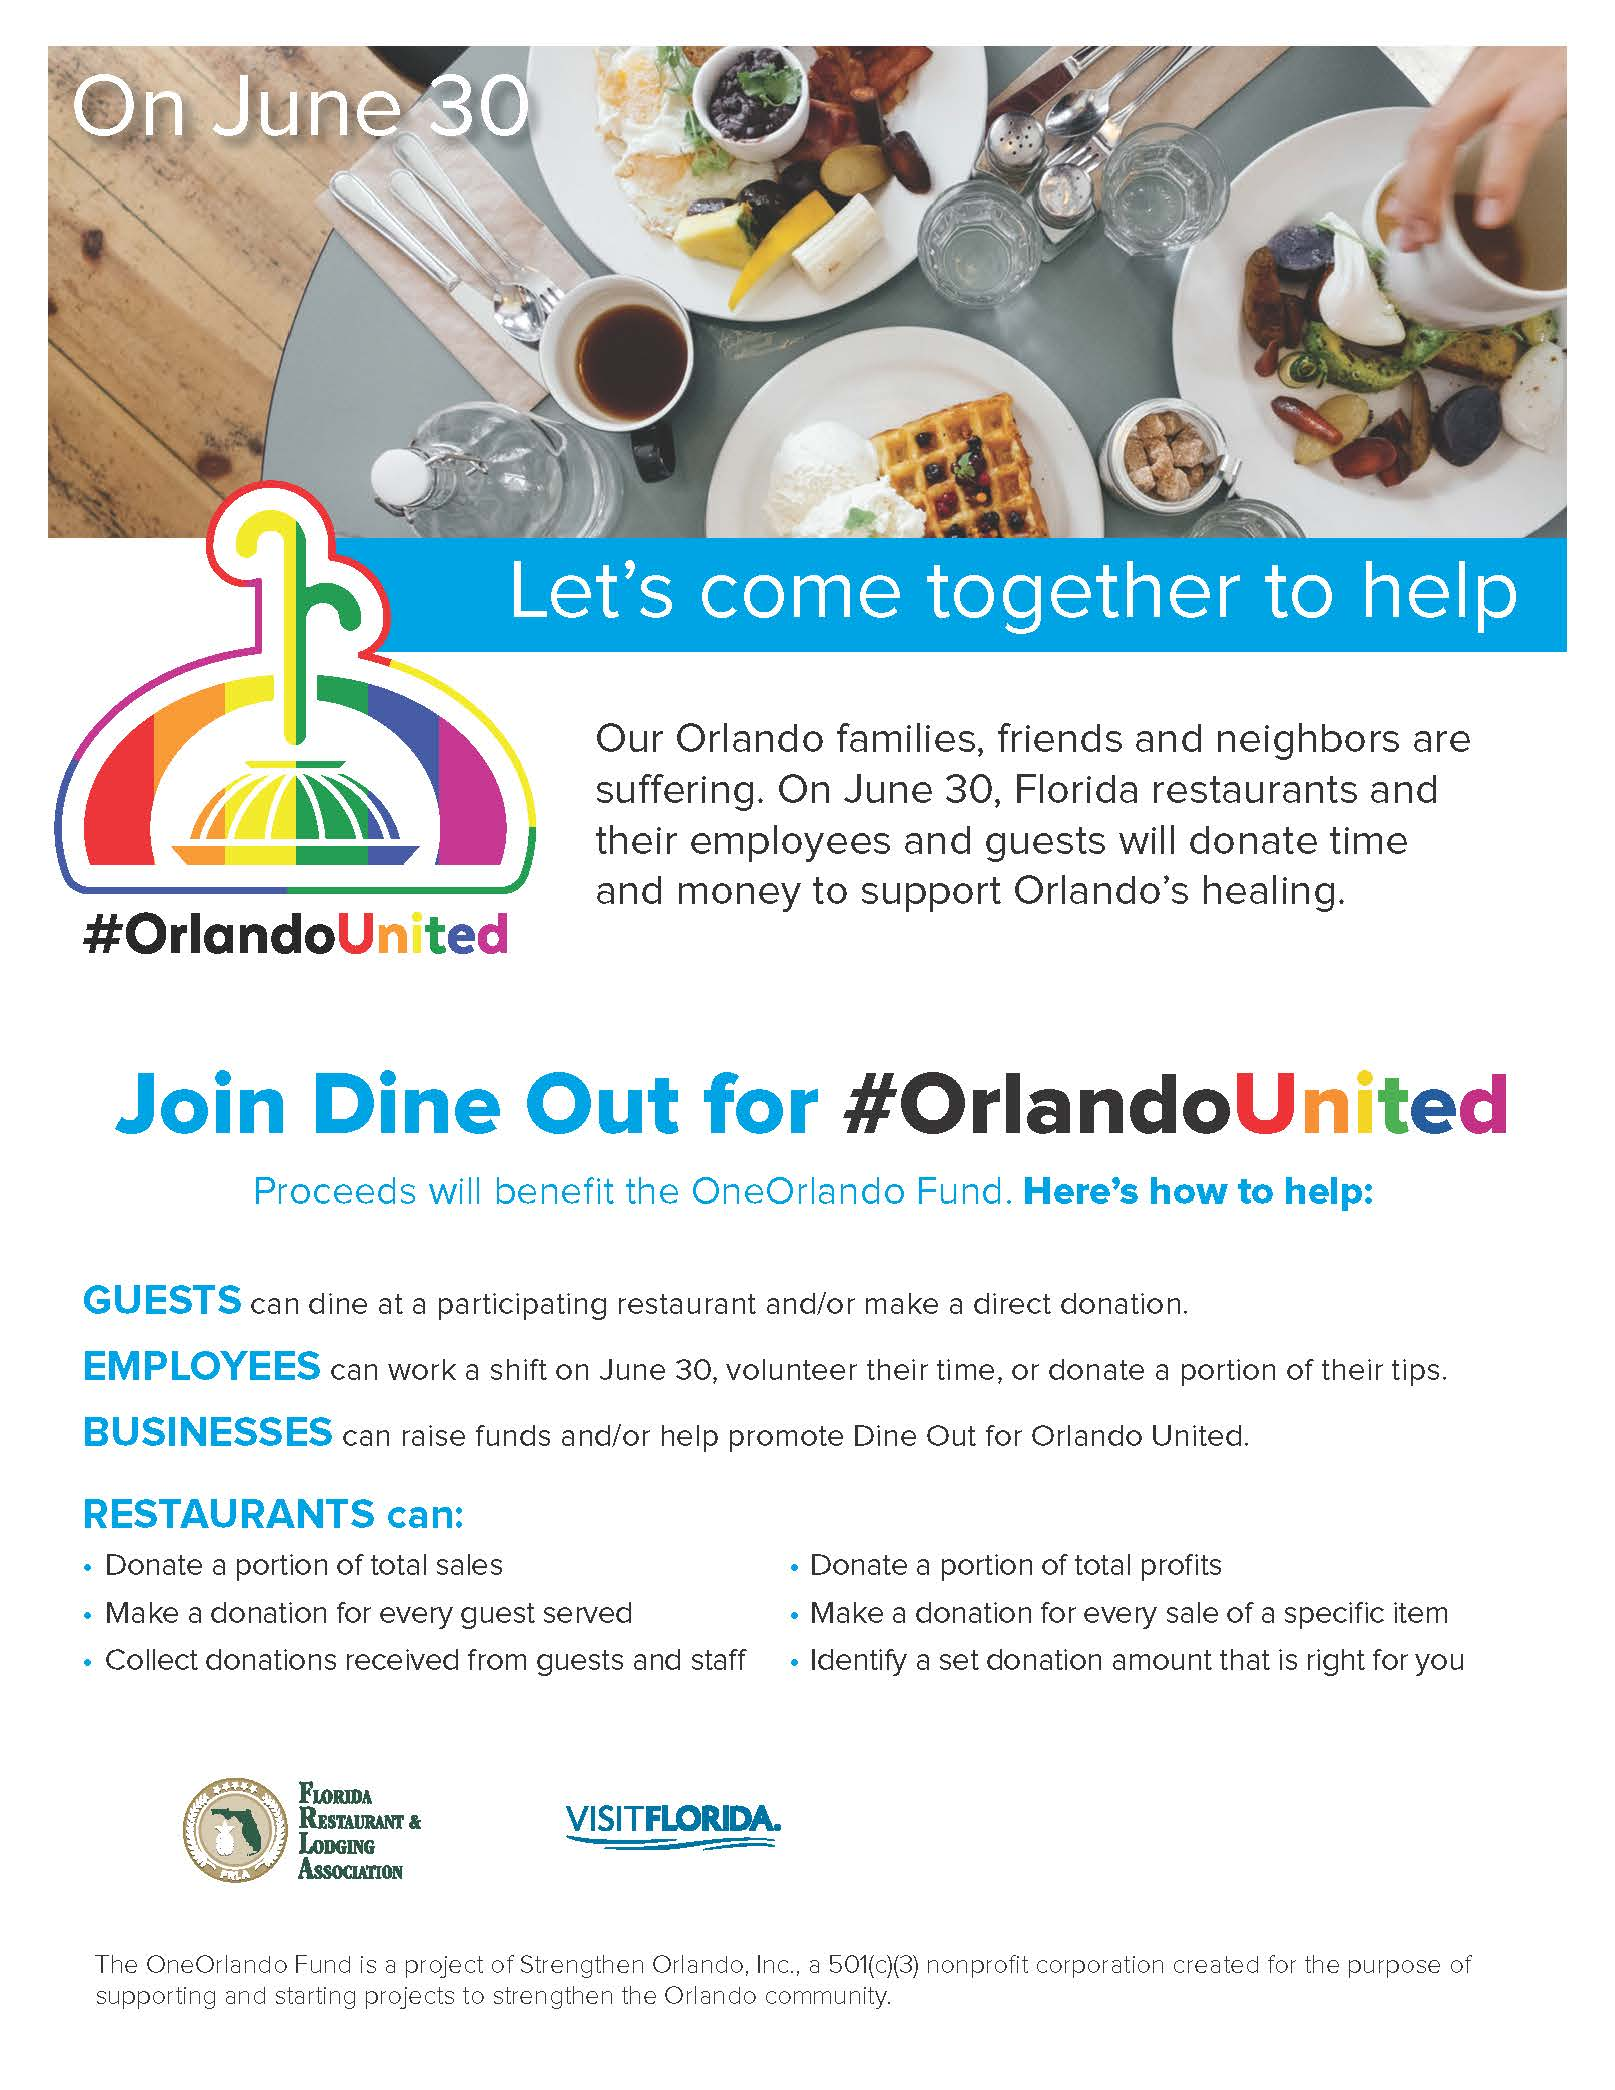 dine out for orlando united to support victims families and